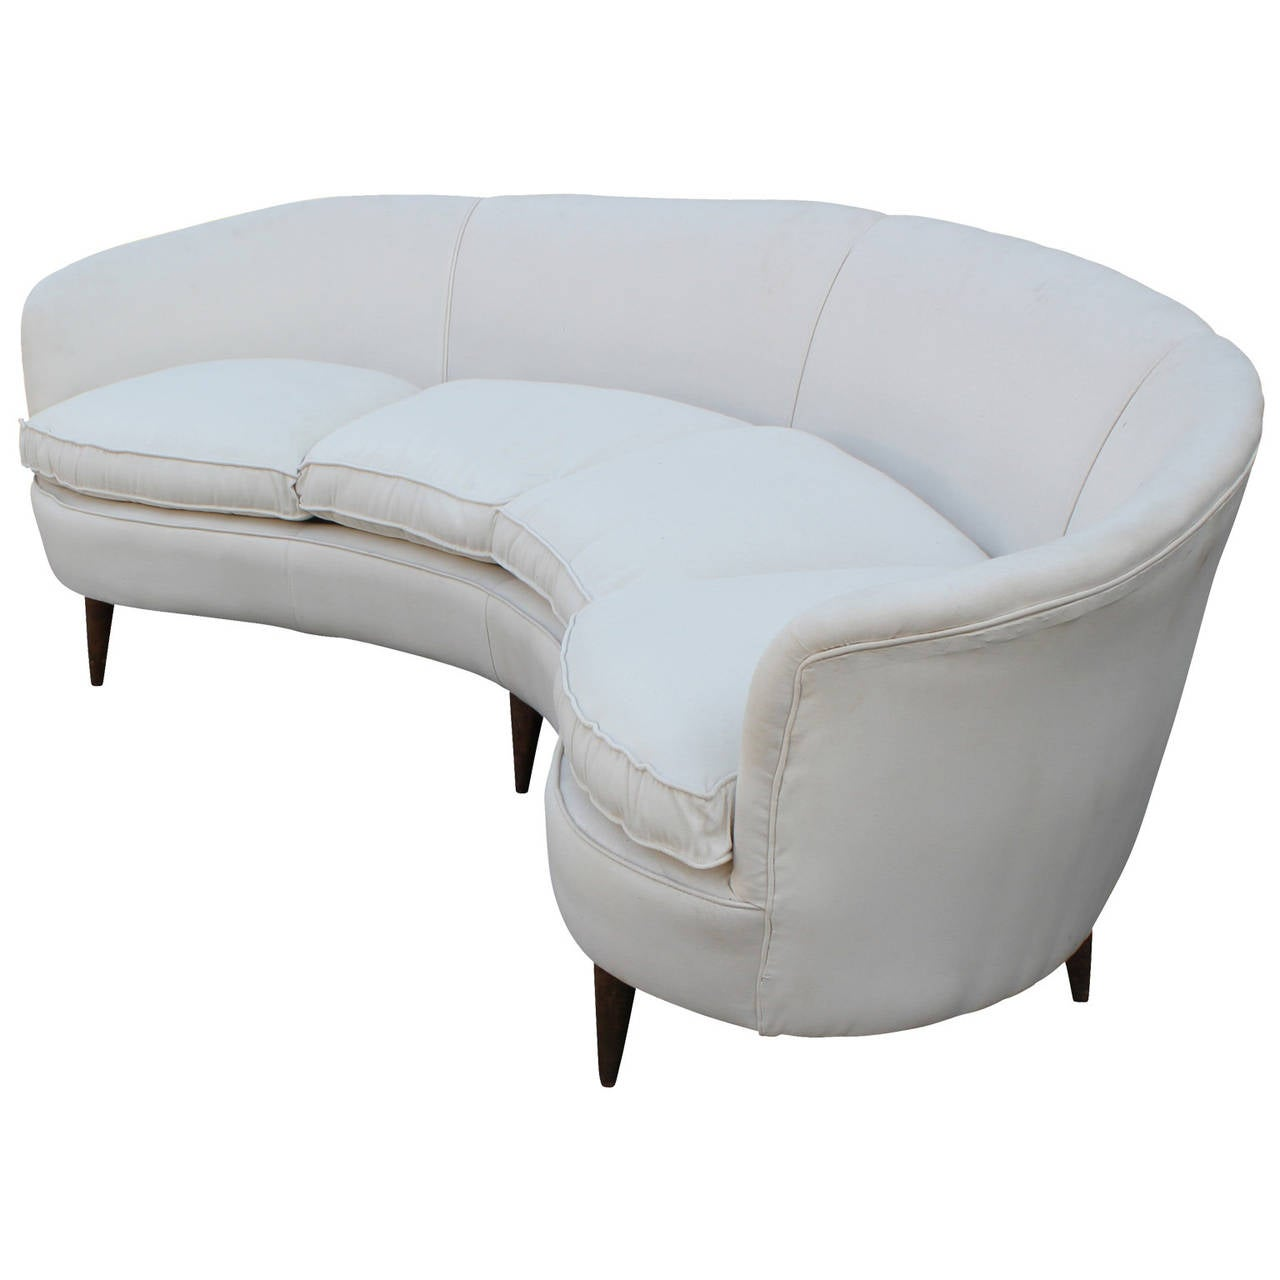 White Curved Sofa Curved White Italian Sofa At 1stdibs Curved White Italian Sofa At 1stdibs